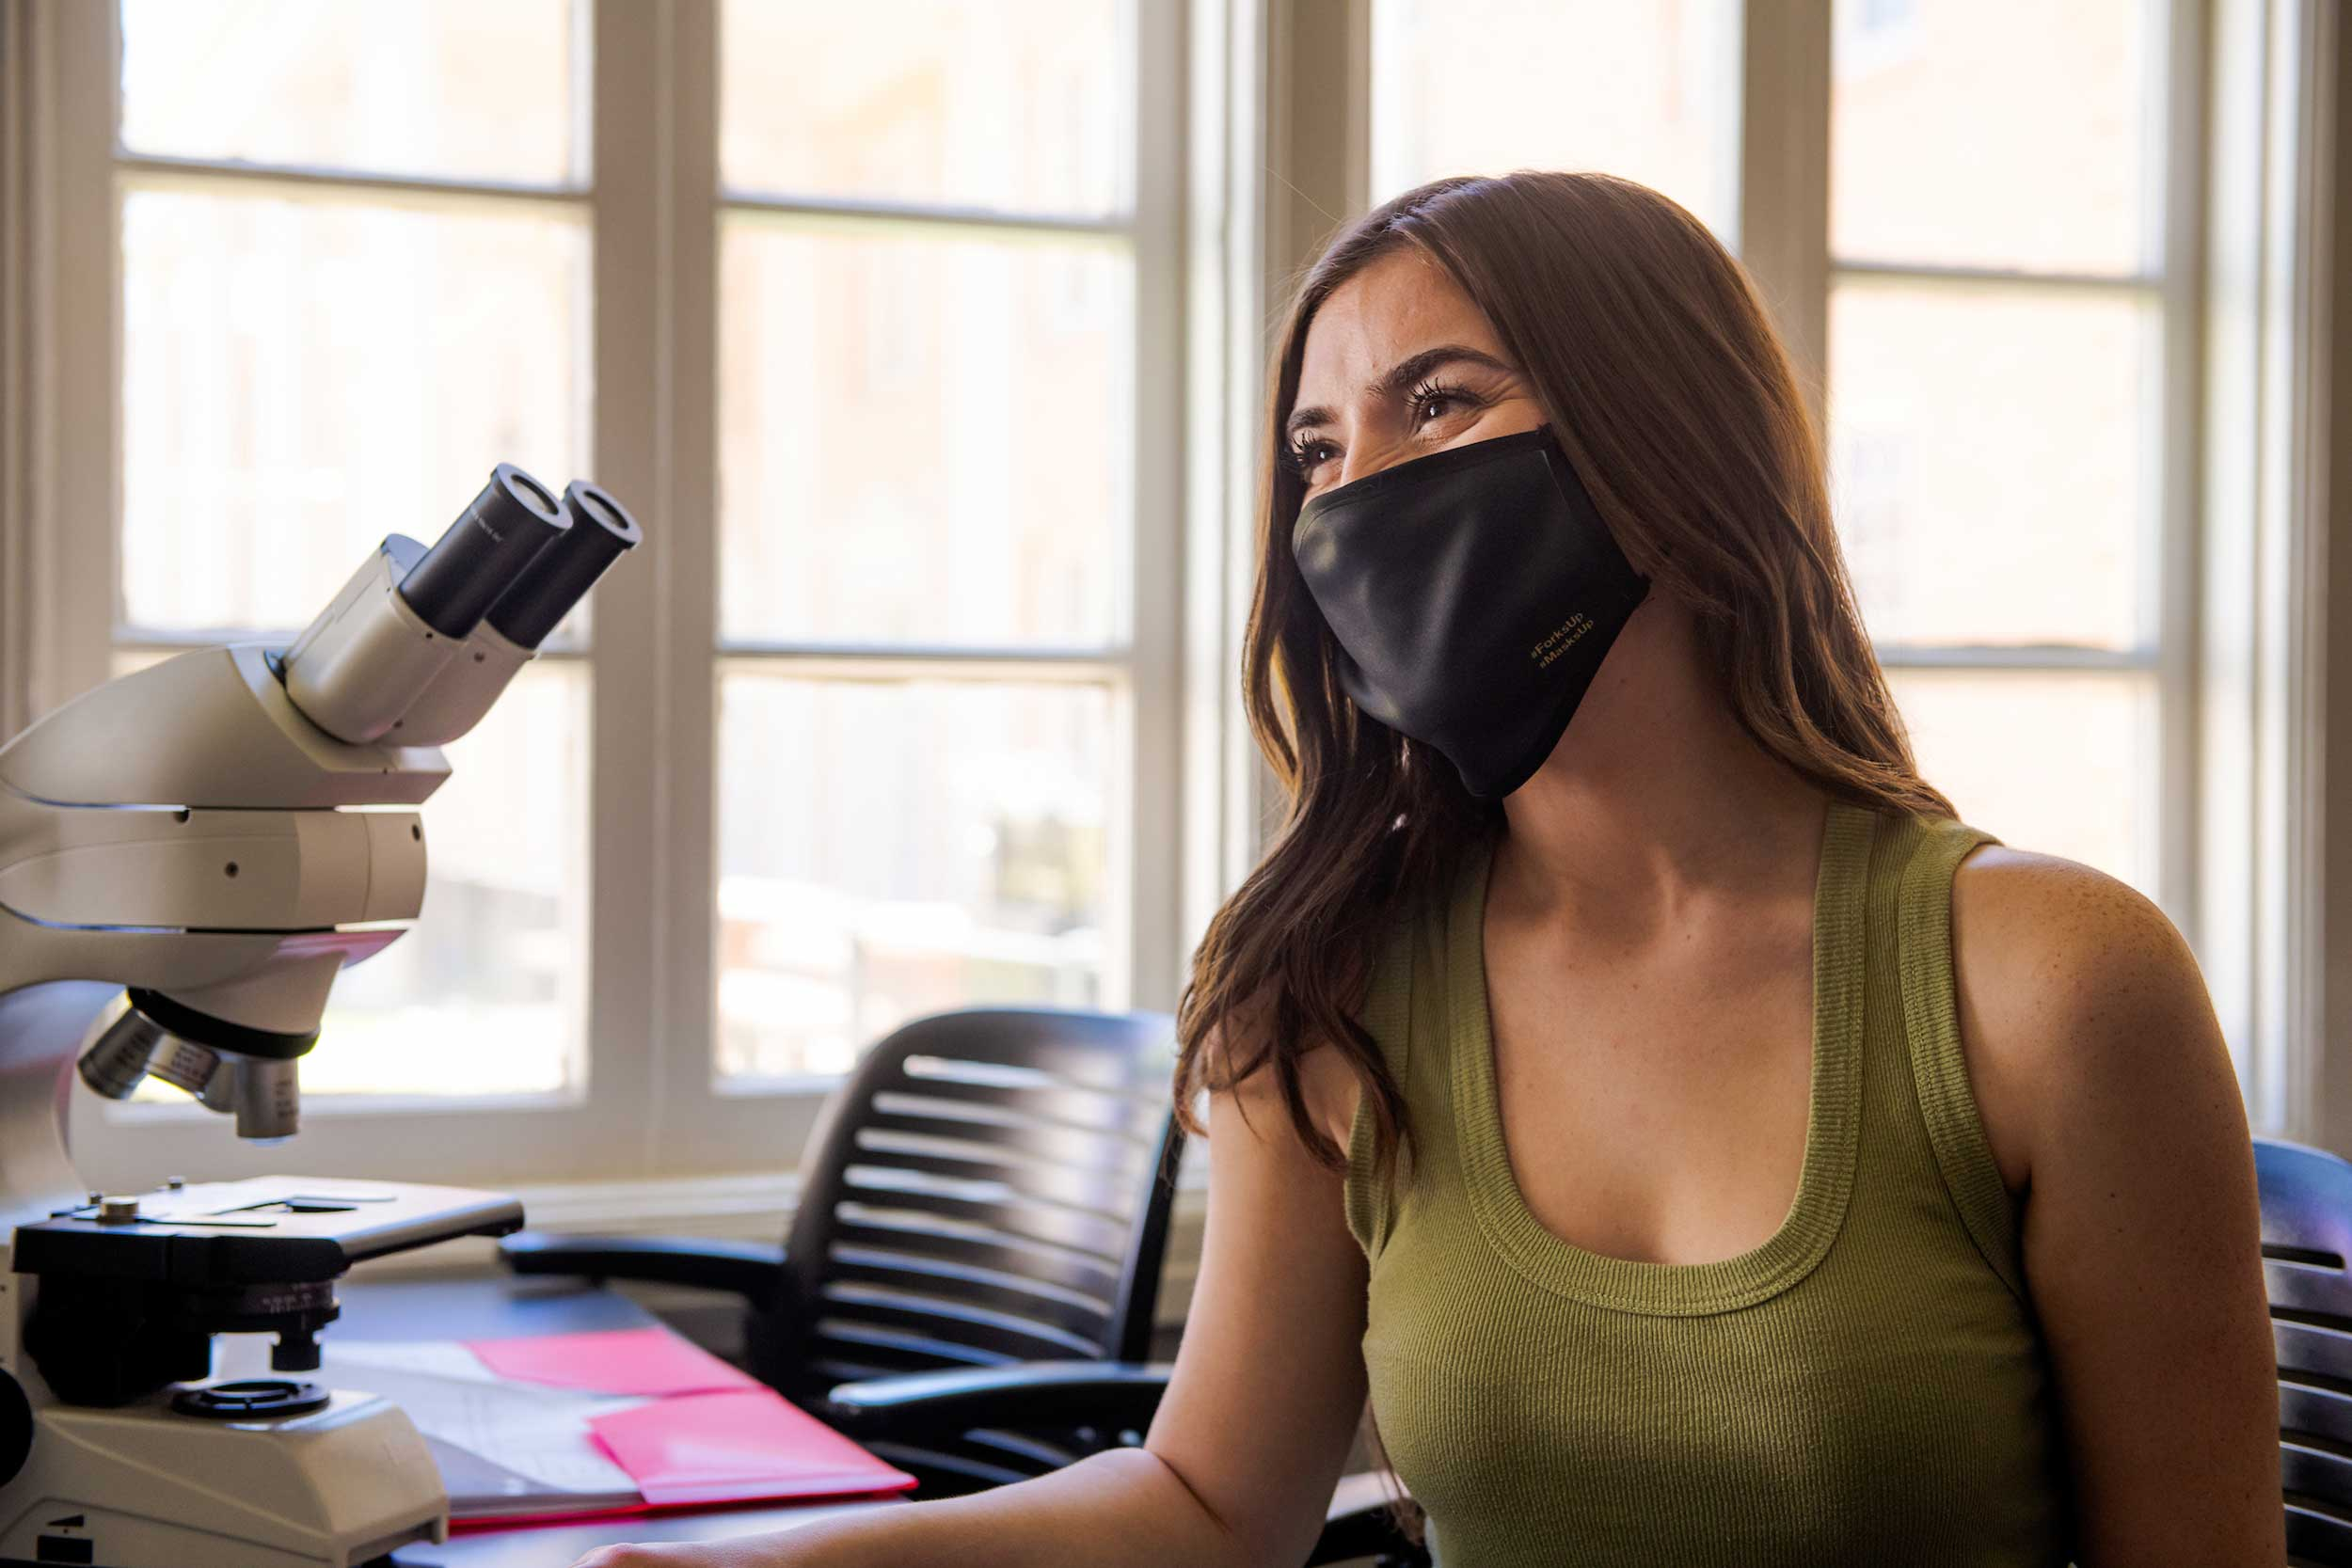 A student wearing a mask sits at a microscope